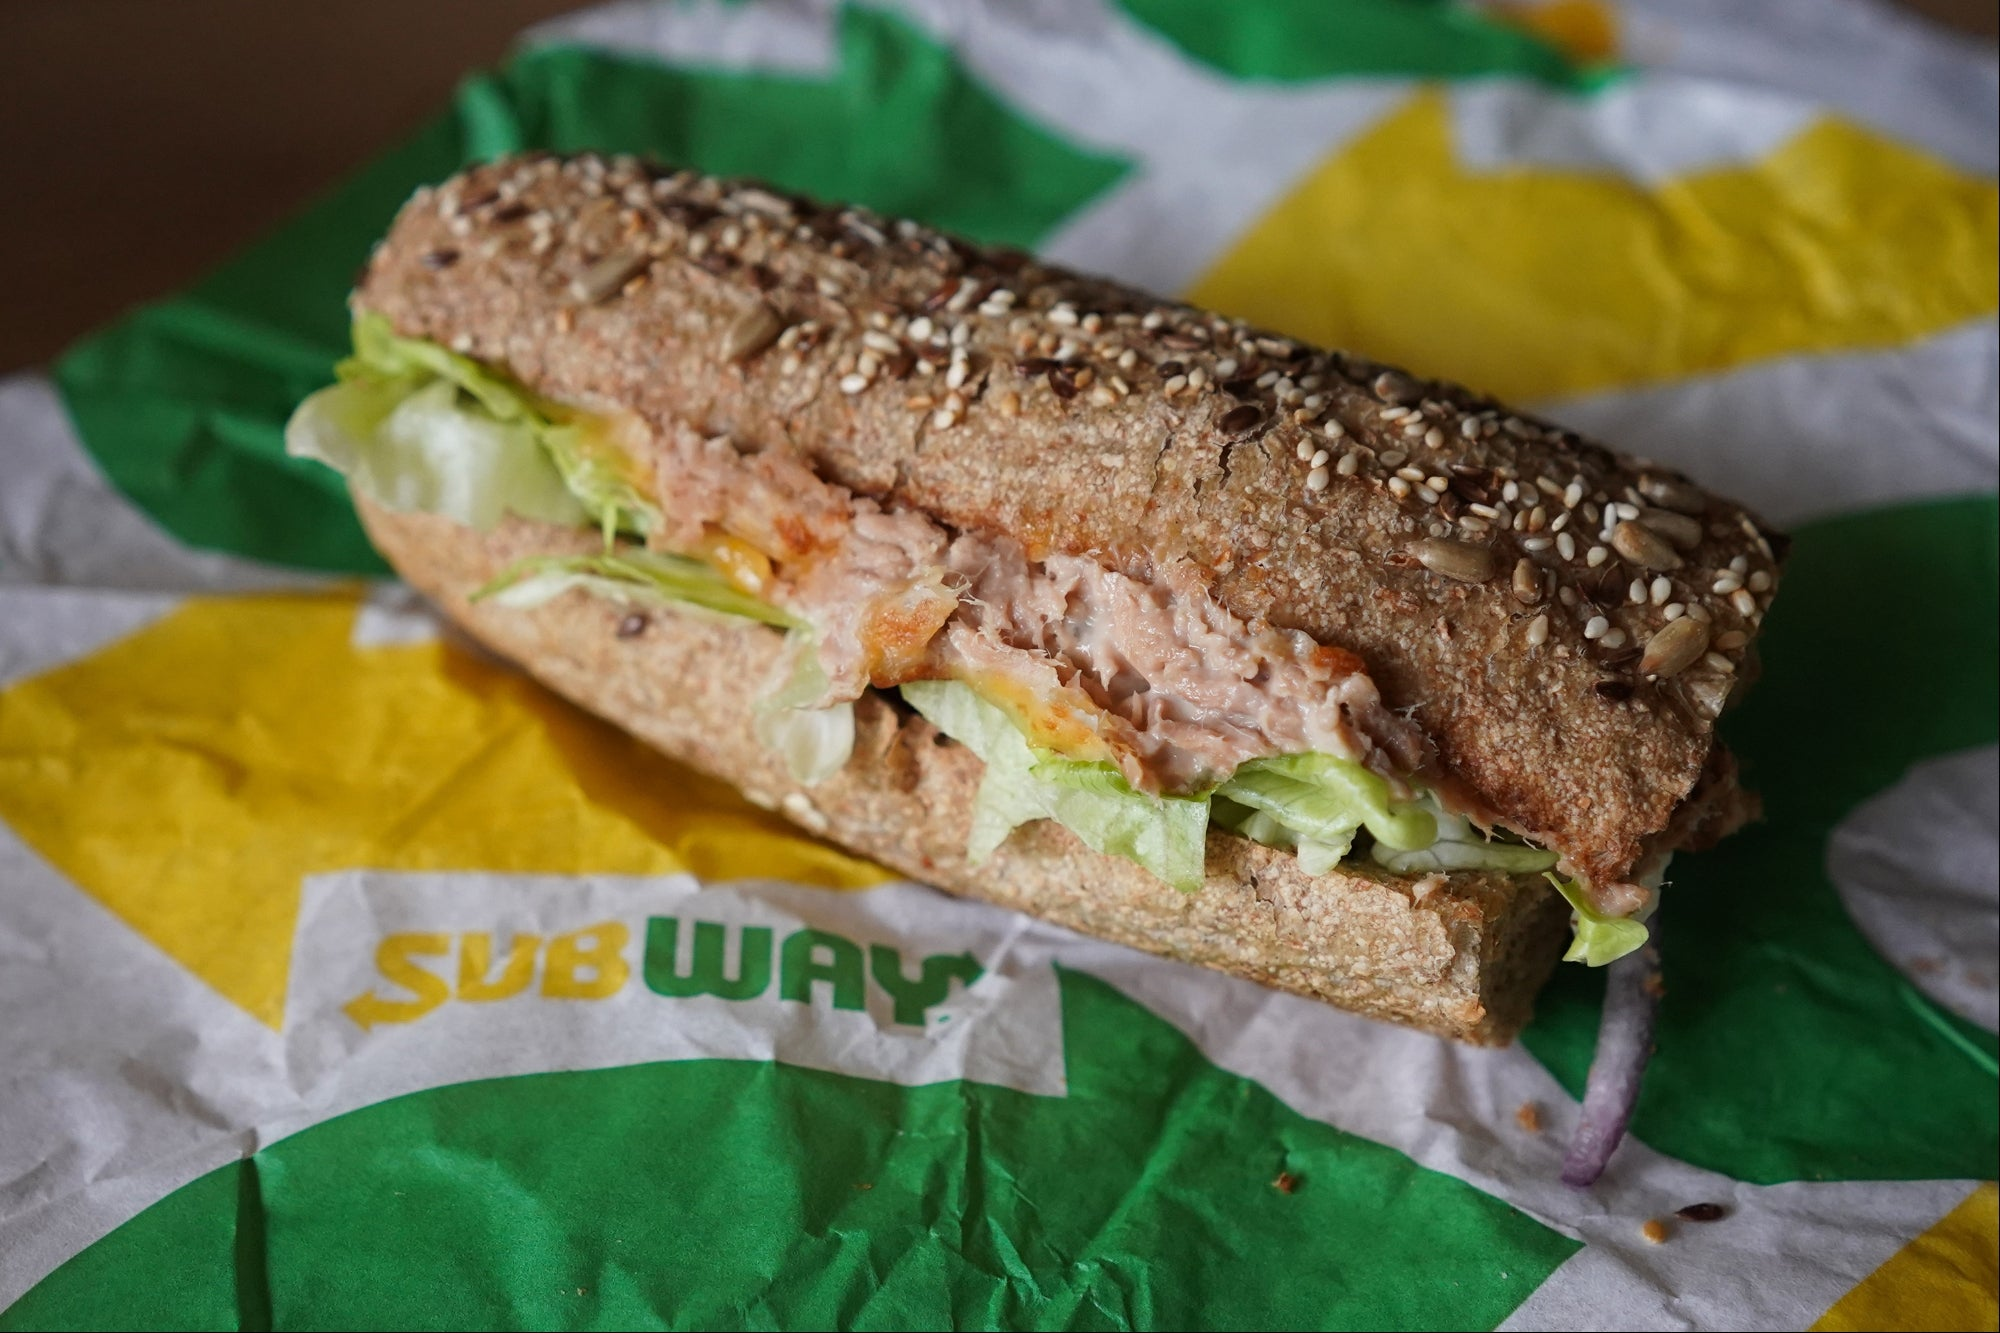 Subway Has a Track Record of Handling Its Business Crises Poorly. Here's What You Can Learn From the Chain's Shortcomings.